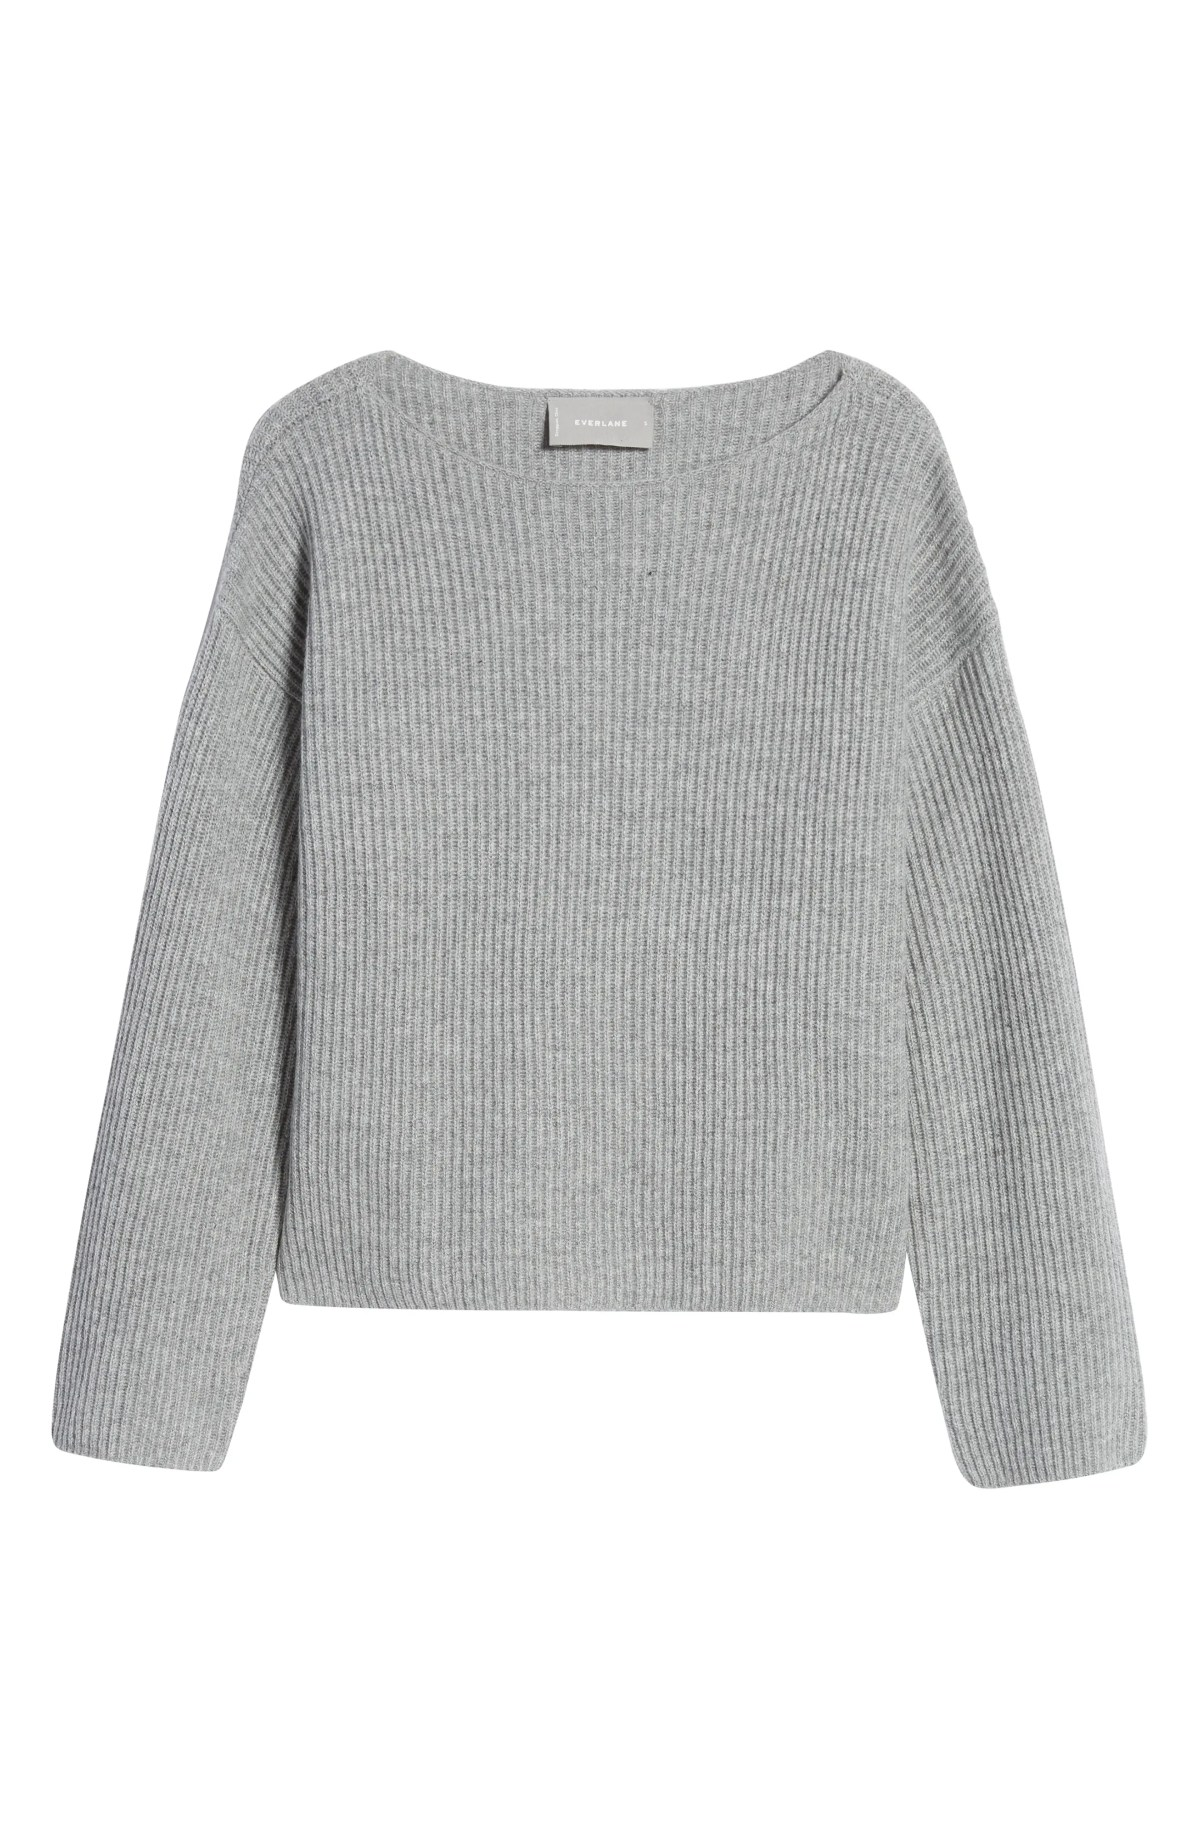 EVERLANE The Cashmere Rib Boatneck Sweater, Main, color, HEATHER GREY